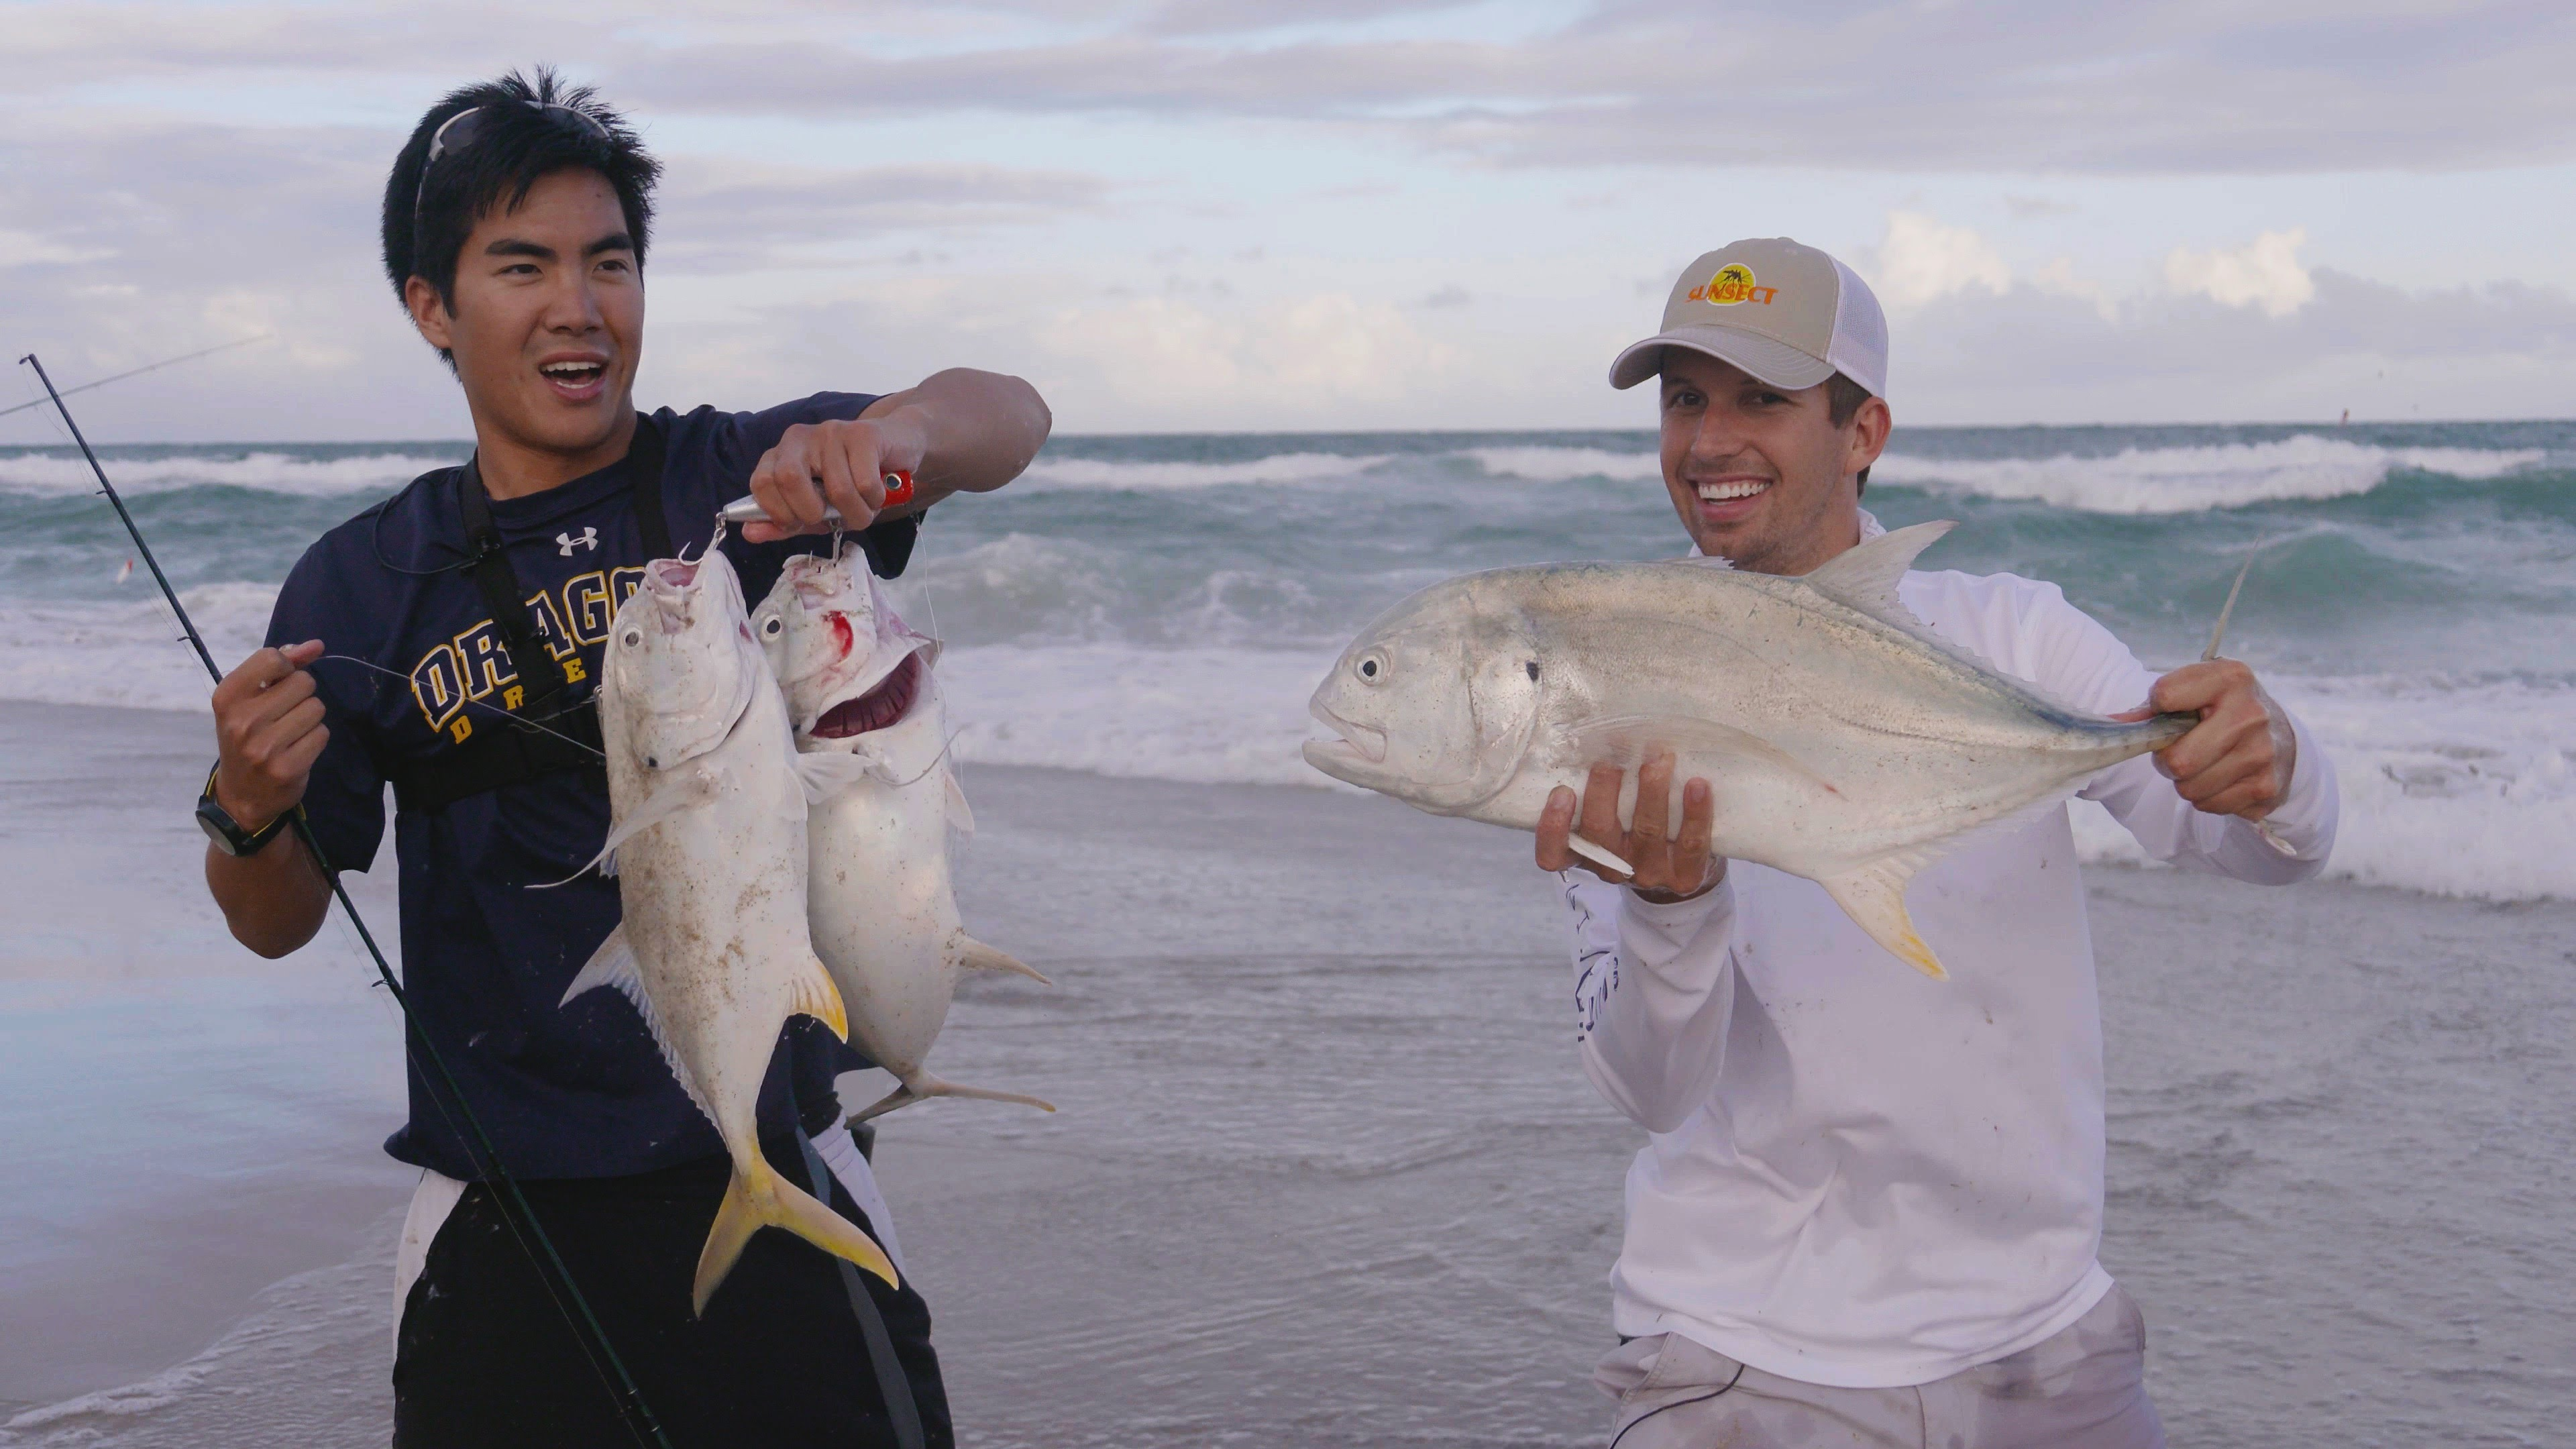 Craziest Fishing Ever!!! Giant Jacks and Bluefish from the Beach in Florida (ft. BlacktipH)